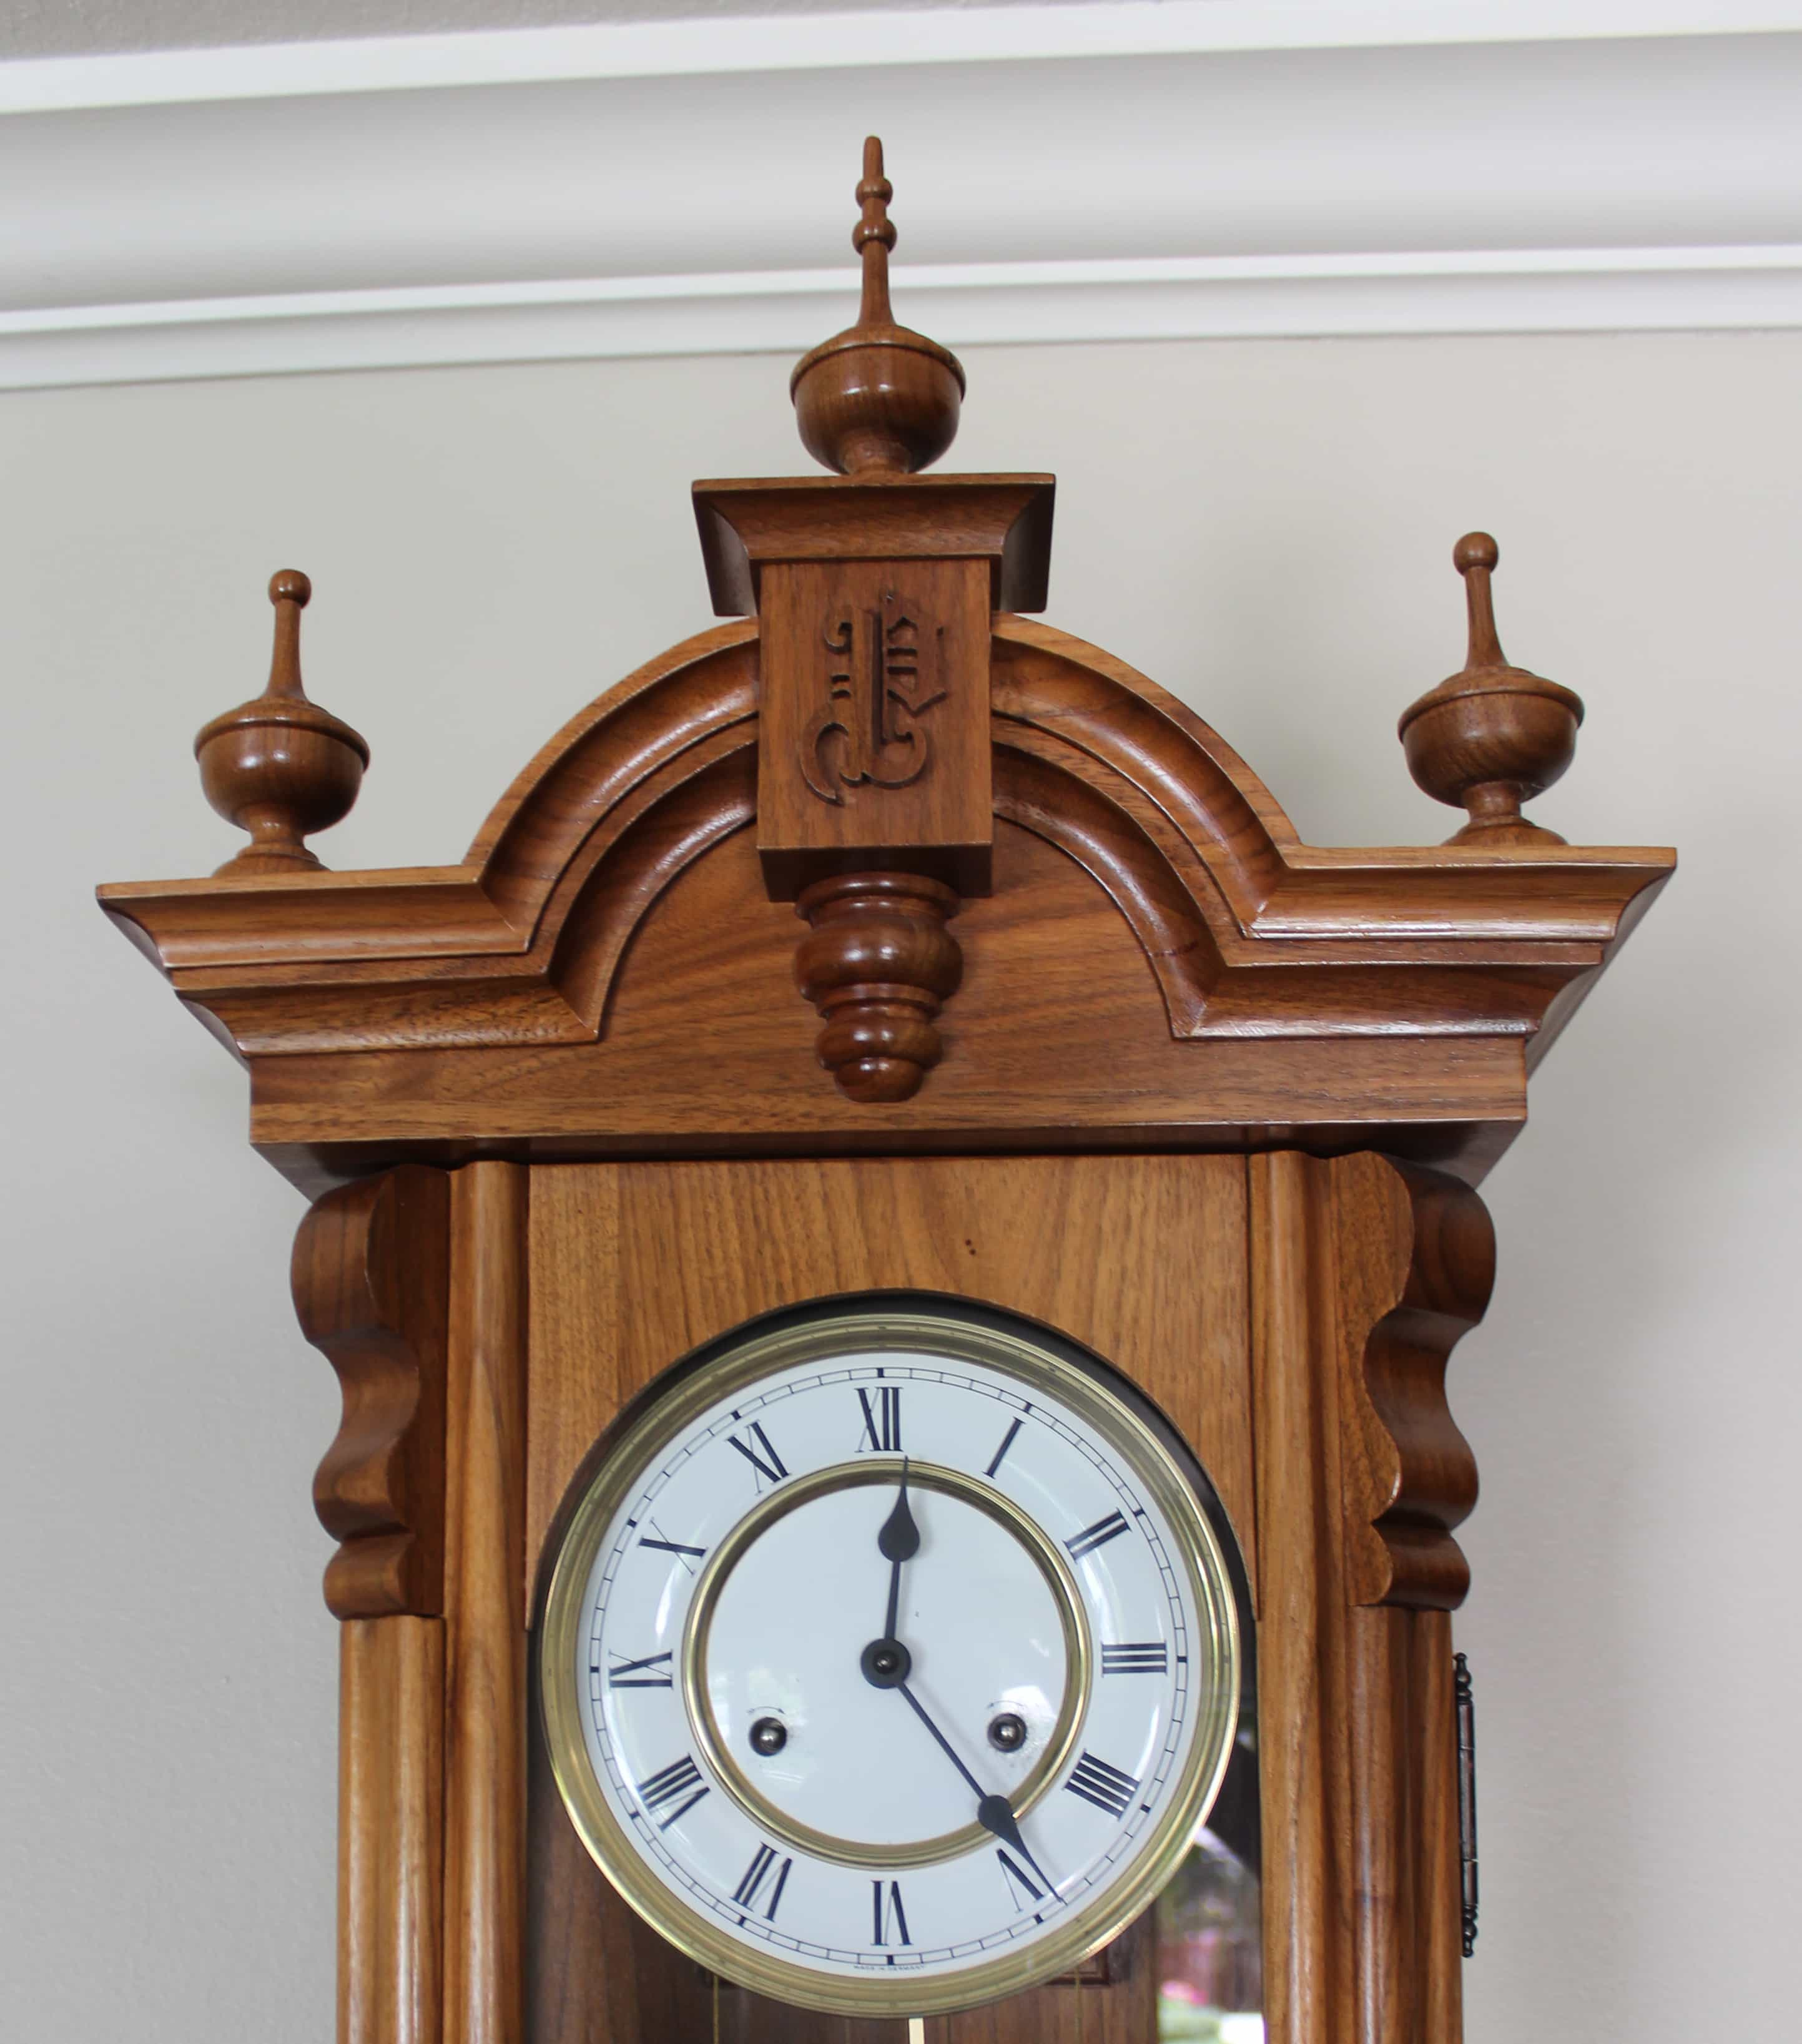 Vienna regulator wall clock woodworking plan top of vienna regulator wall clock woodworkilng plan amipublicfo Image collections